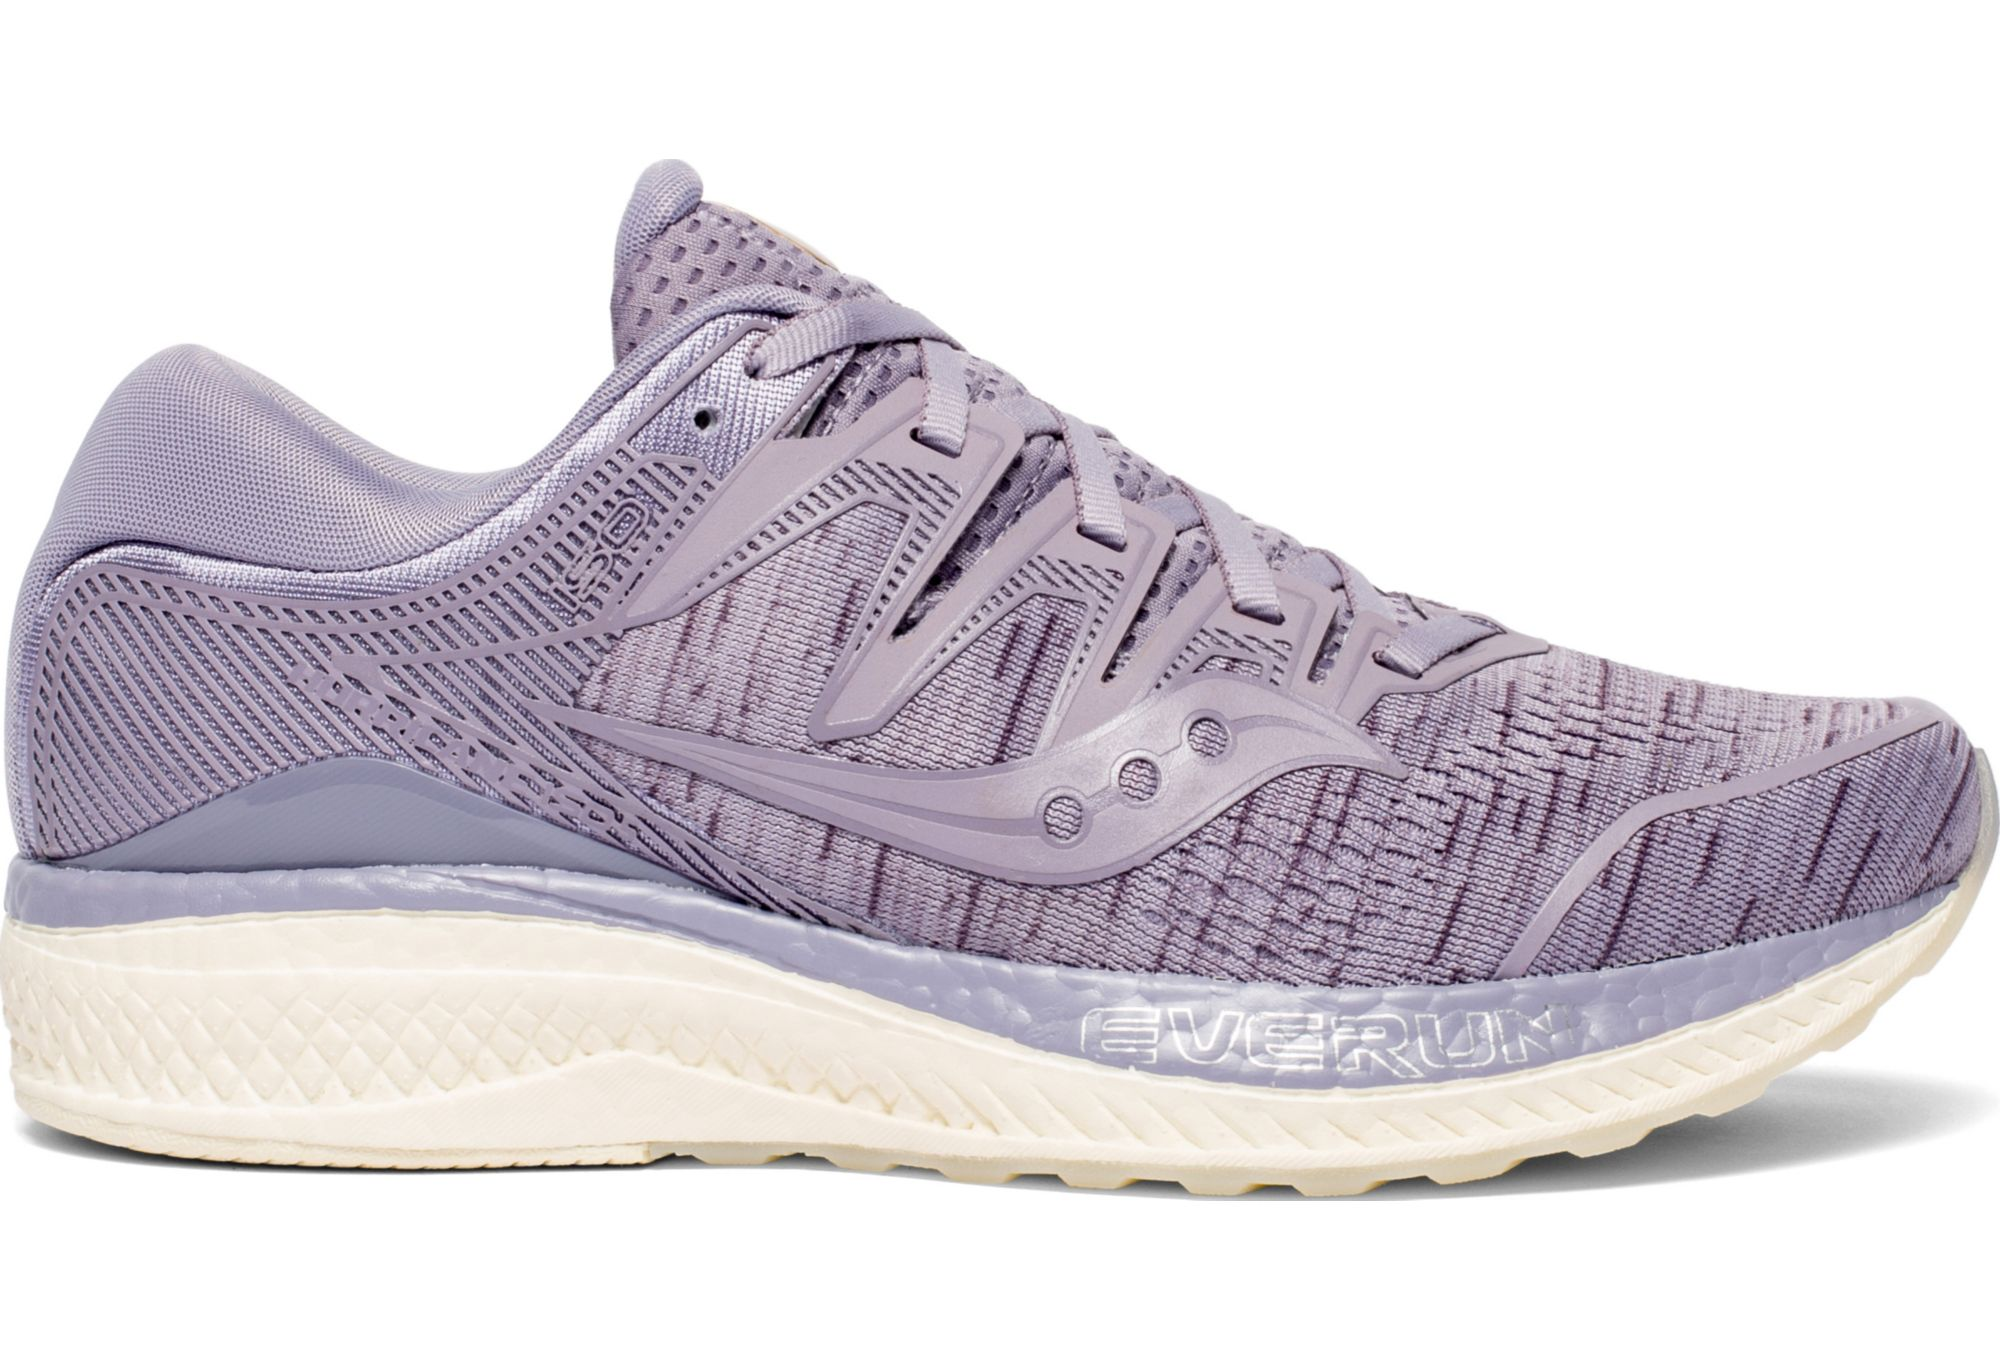 bf56681118 Saucony Hurricane ISO 5 Women's Running Shoes Purple Shade